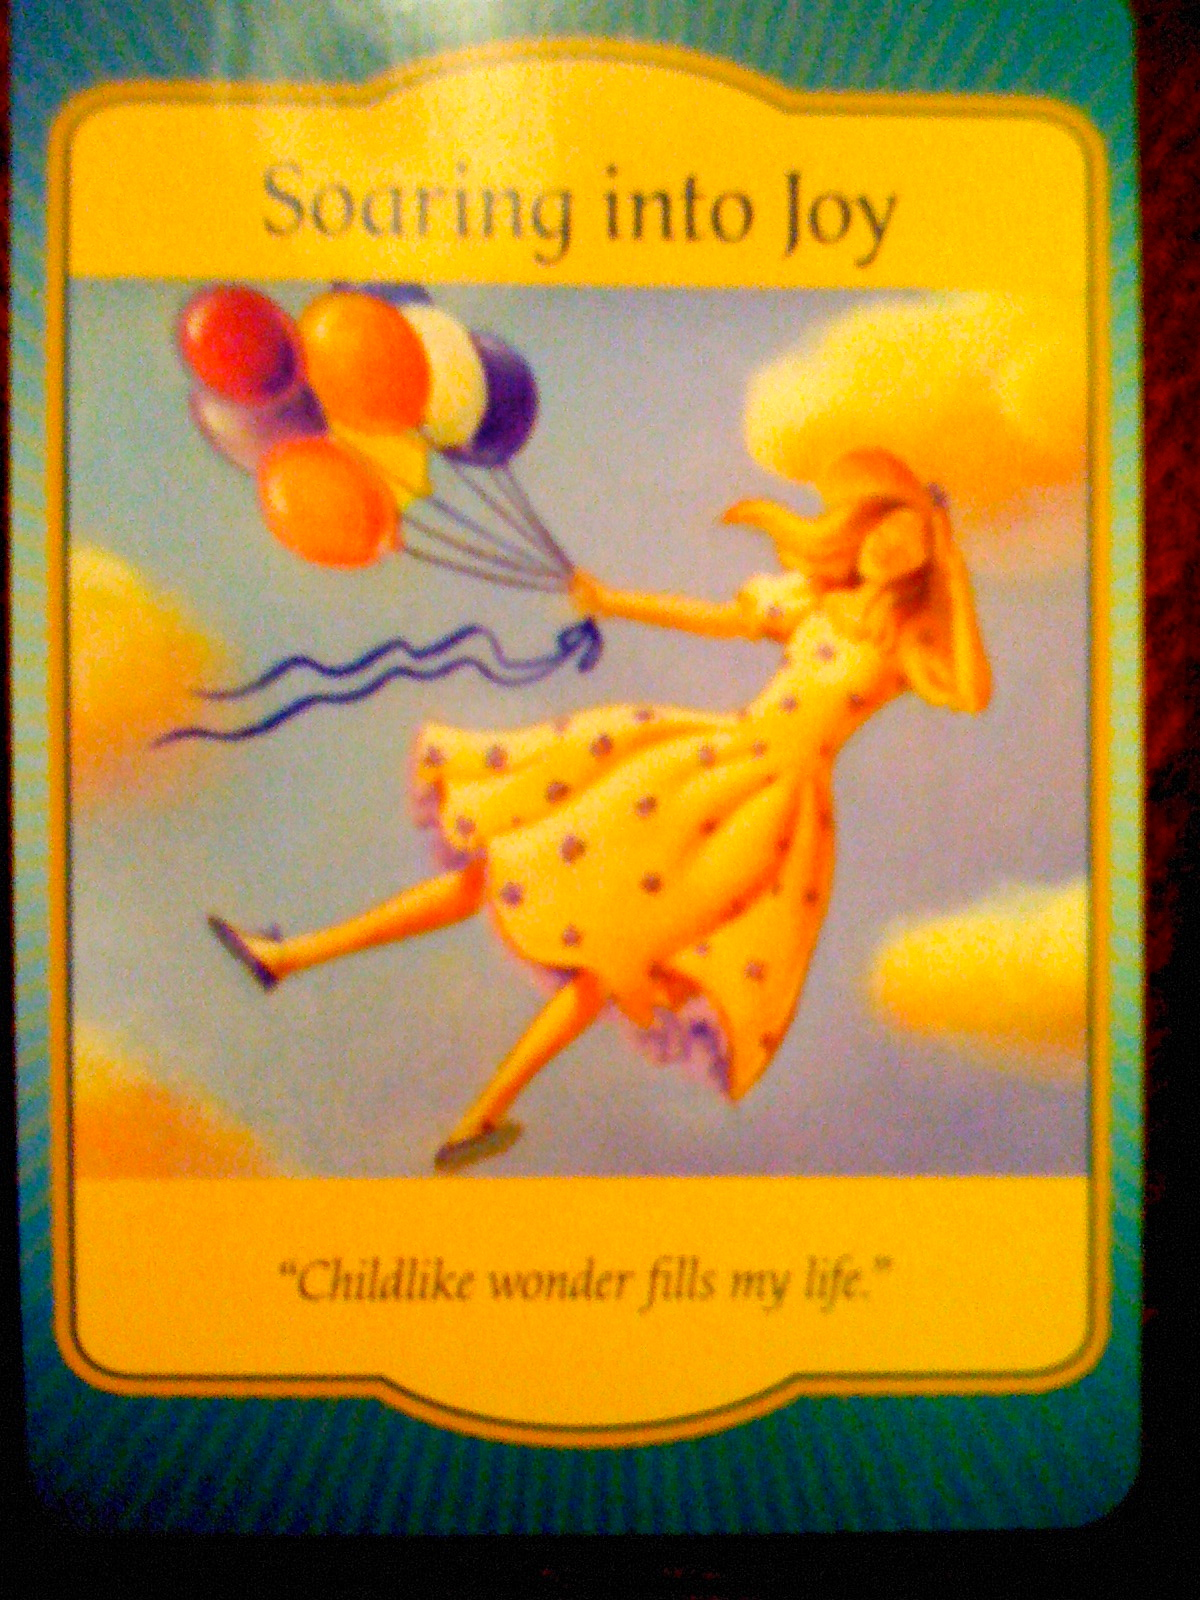 Soaring into joy